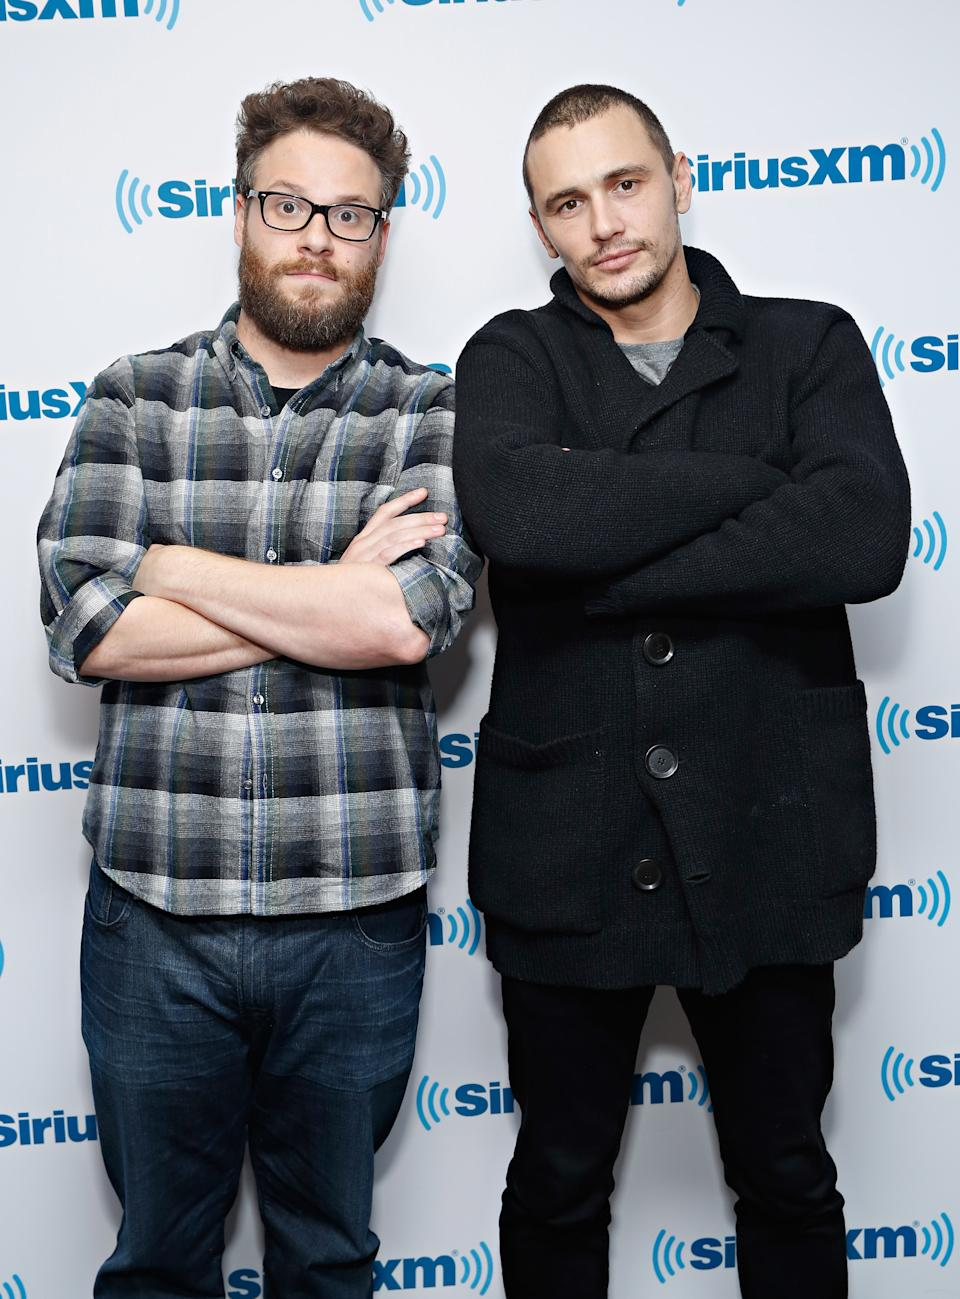 Seth Rogen said the dynamic of his relationship with James Franco had changed. (Photo by Cindy Ord/Getty Images for SiriusXM)